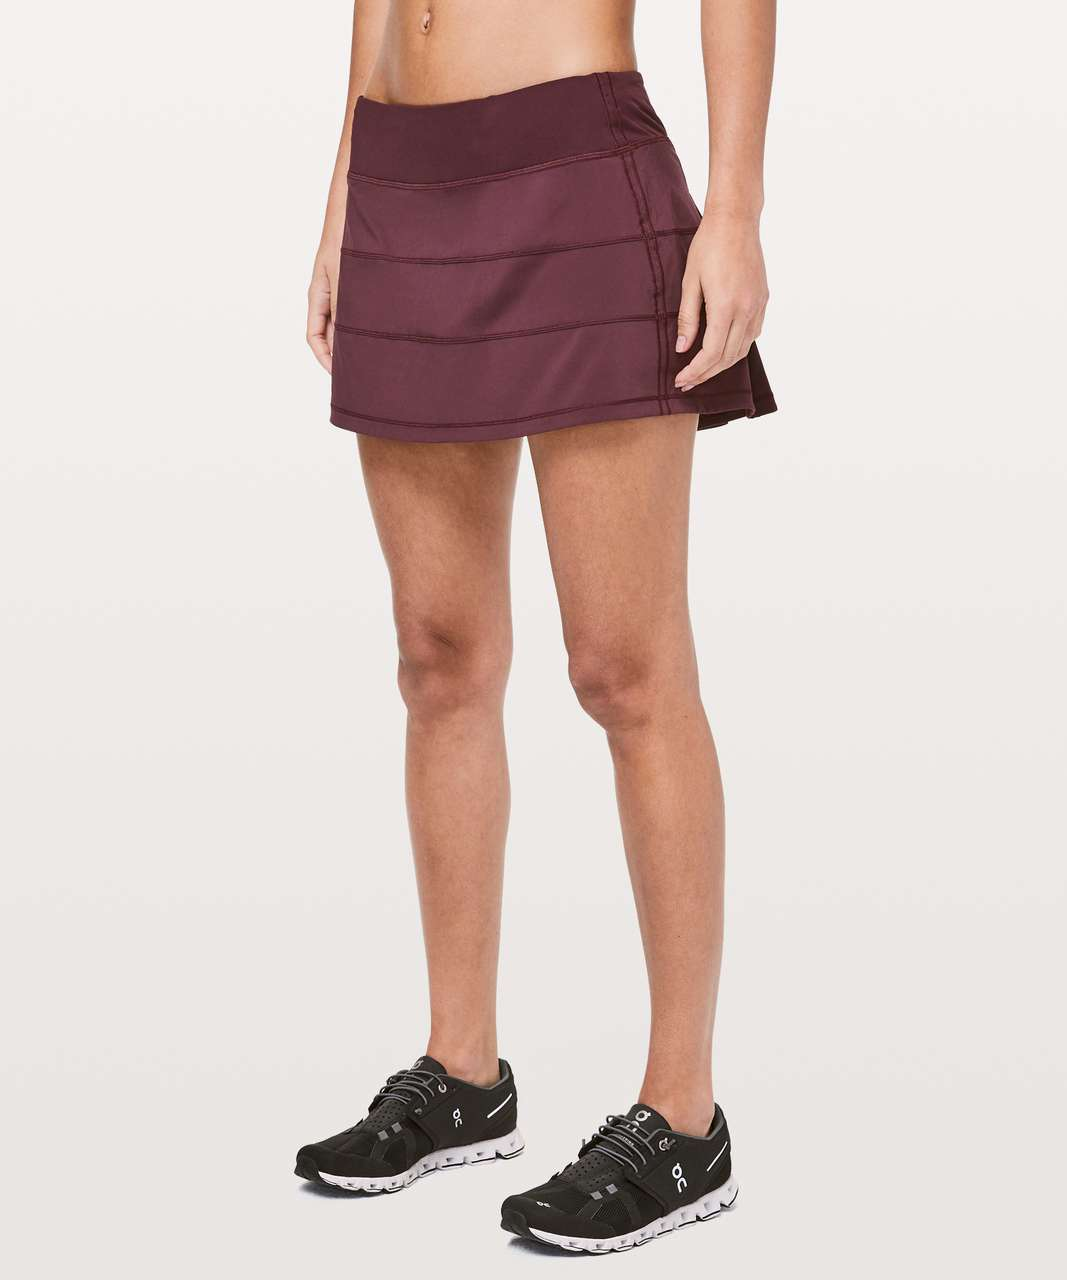 "Lululemon Pace Rival Skirt (Regular) *4-way Stretch 13"" - Dark Adobe"